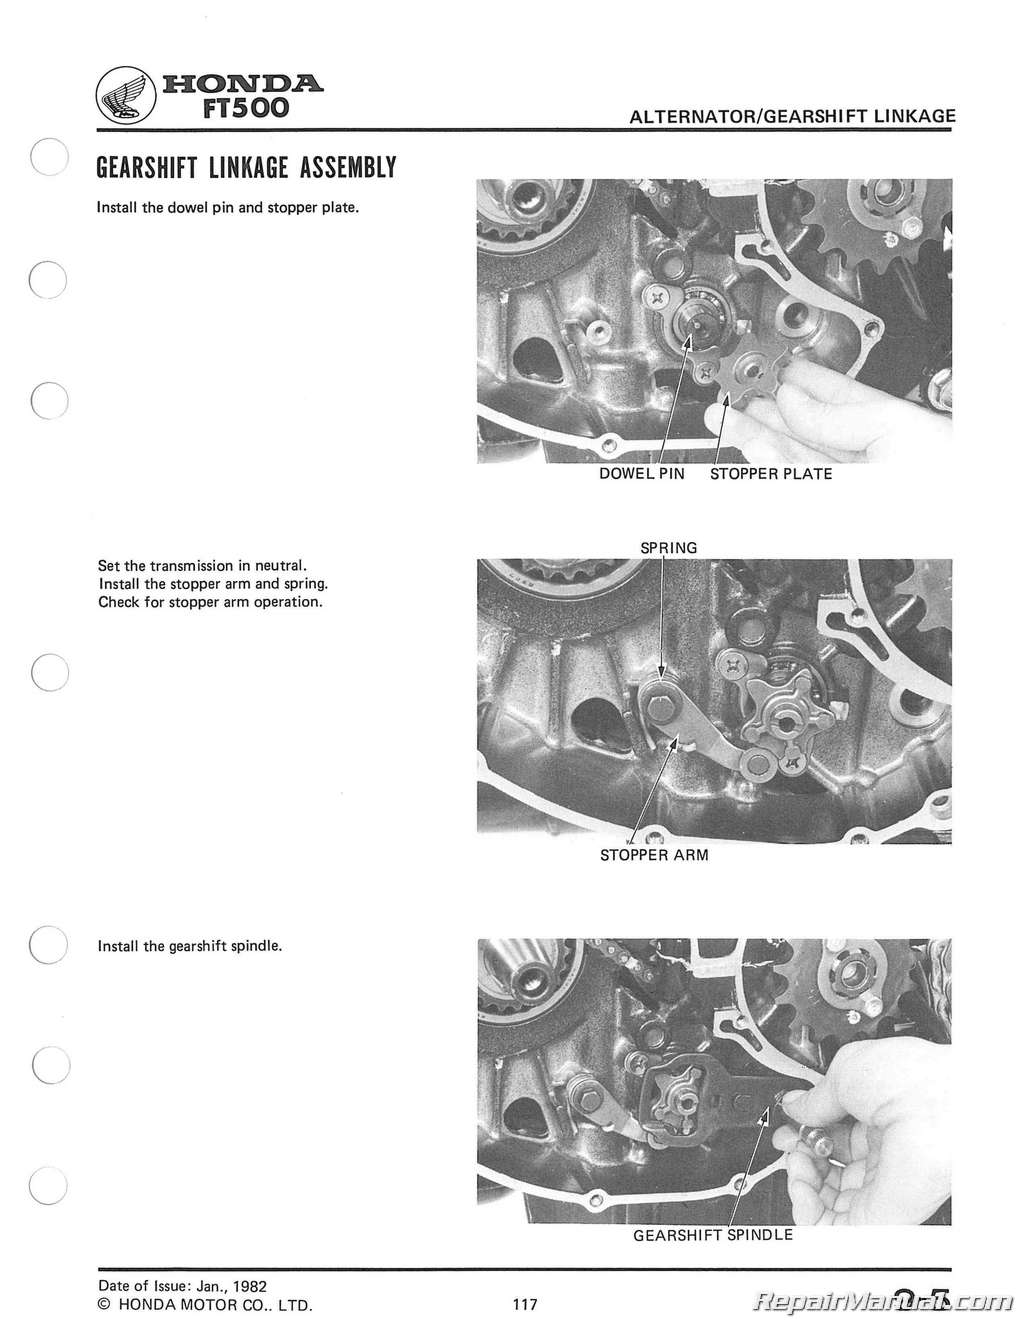 Wiring Diagram For A Honda Ft 500 Get Free Image